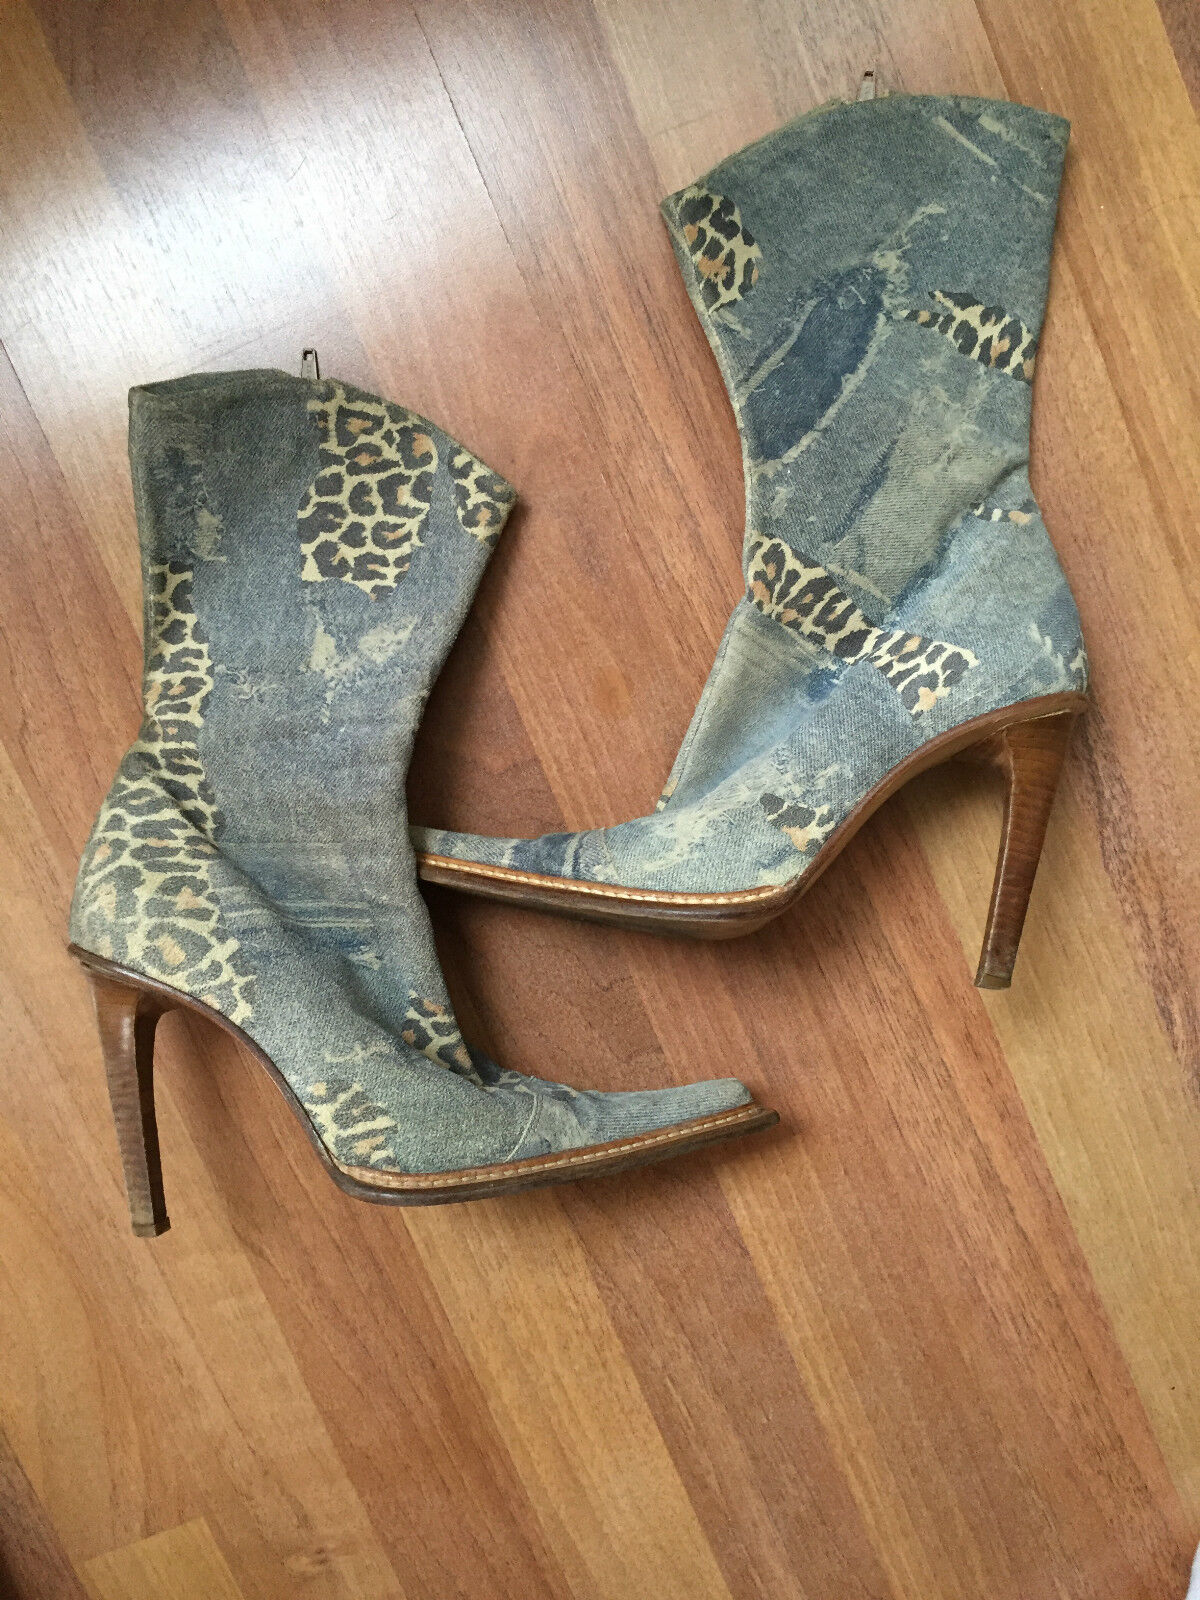 BROWNS Vero Cuoio Italian Made Jean With Leopard Print Boots Size 38 Retail  500